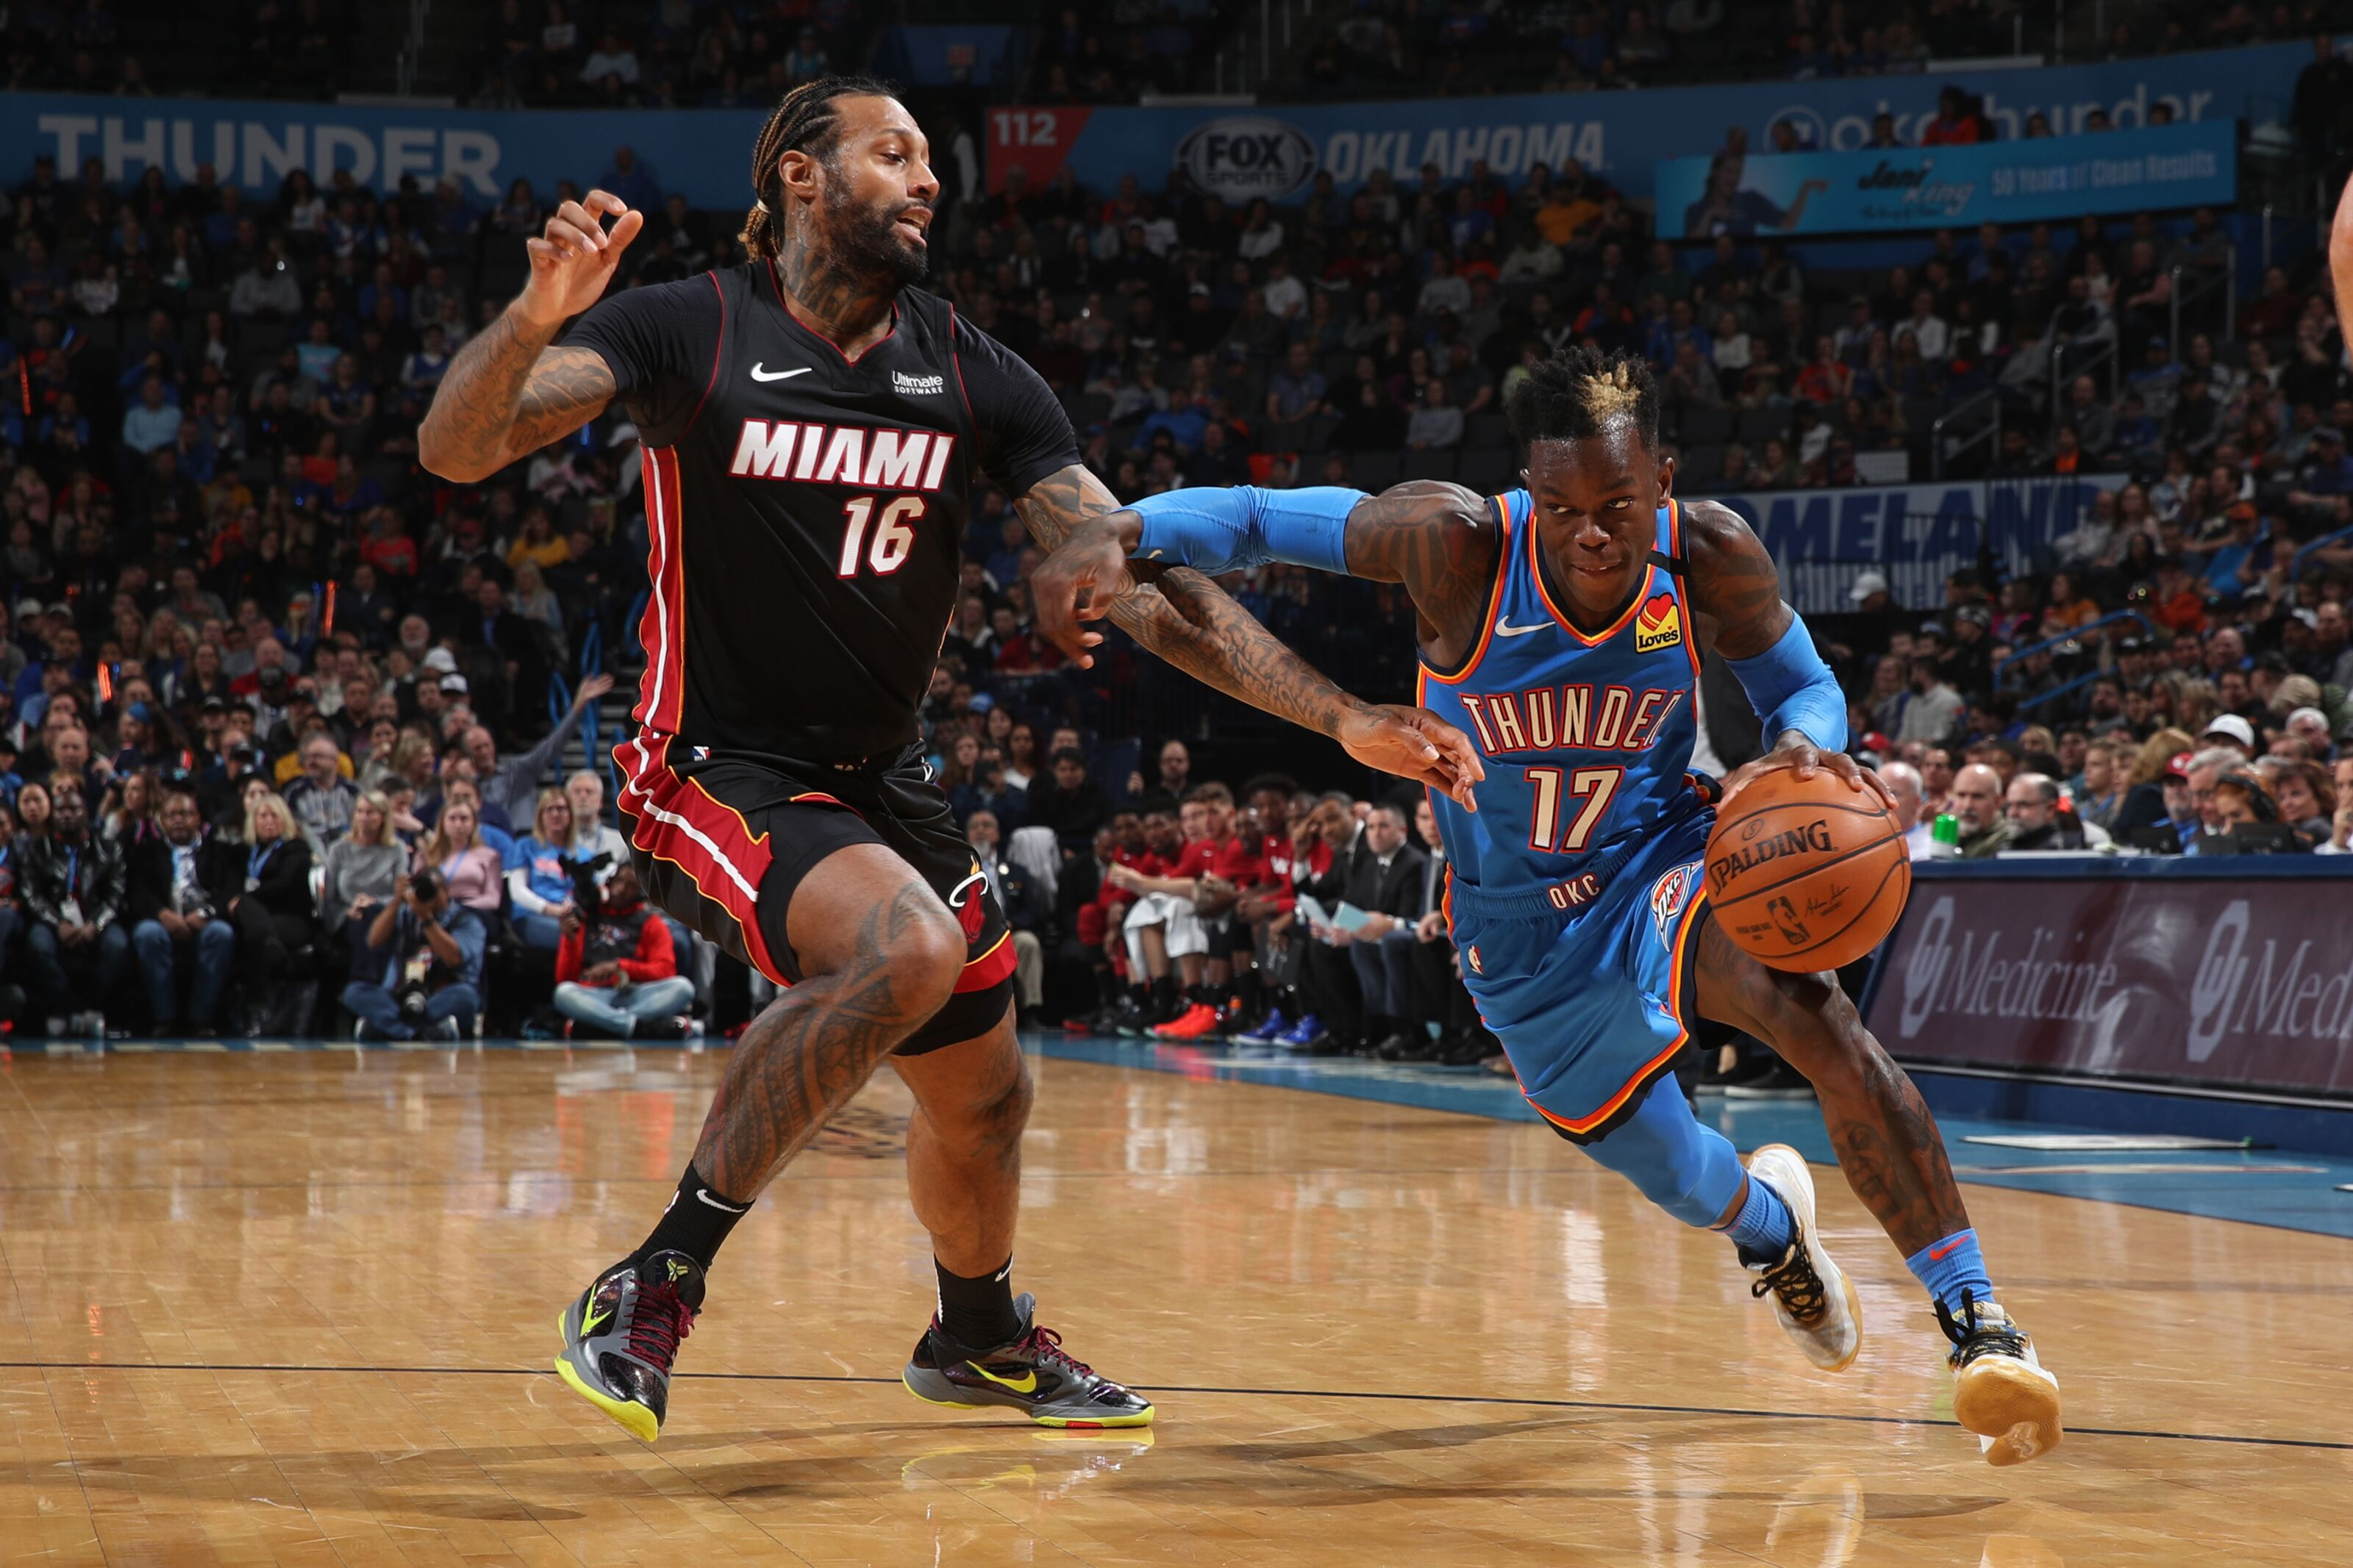 The Miami Heat get a much needed road win in Oklahoma City